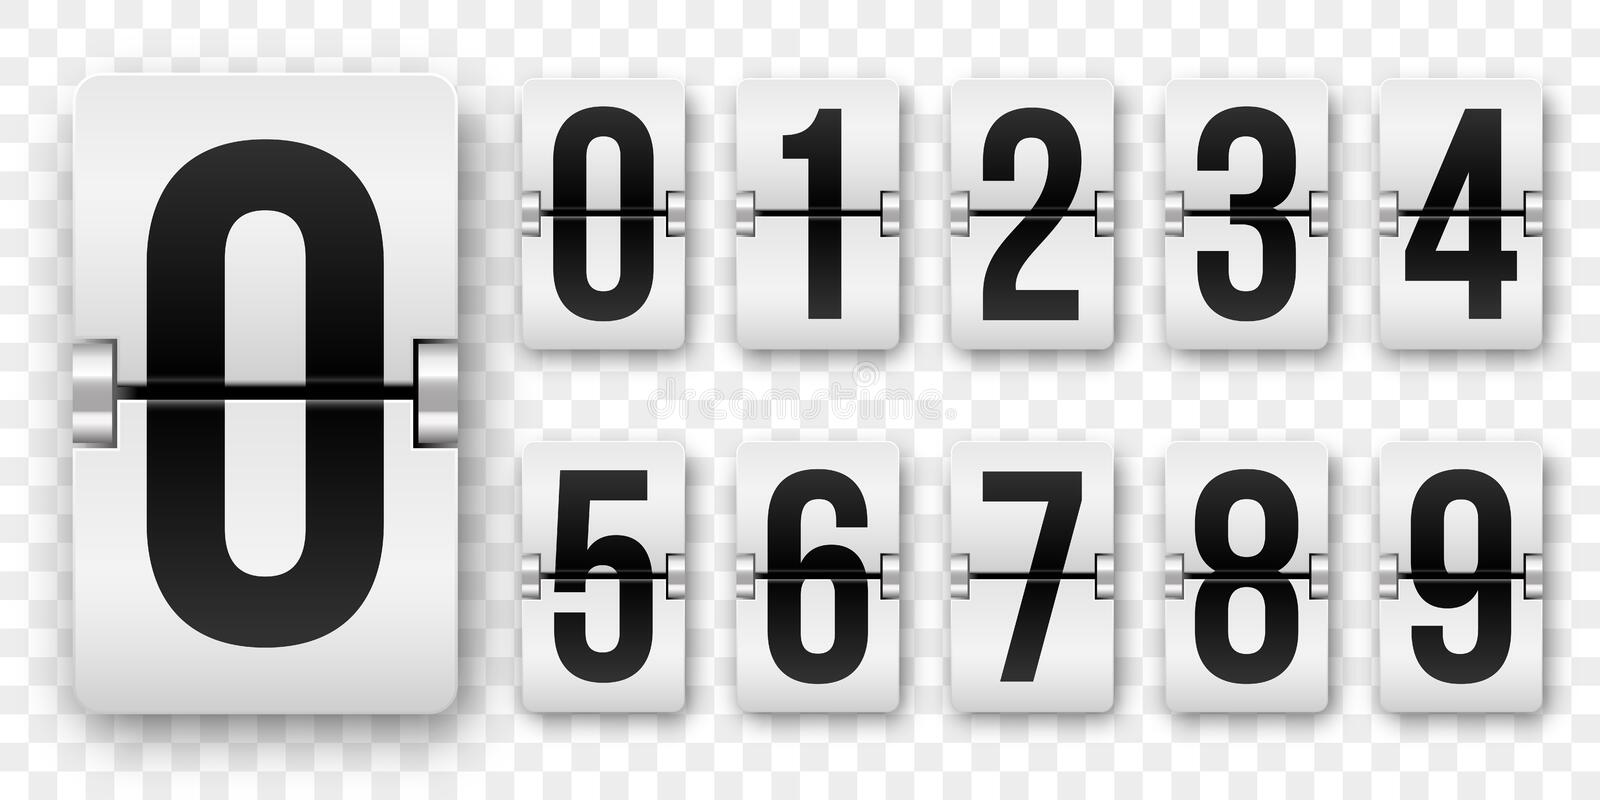 Countdown numbers flip counter vector isolated 0 to 9 retro style flip clock or scoreboard mechanical numbers set black on white vector illustration